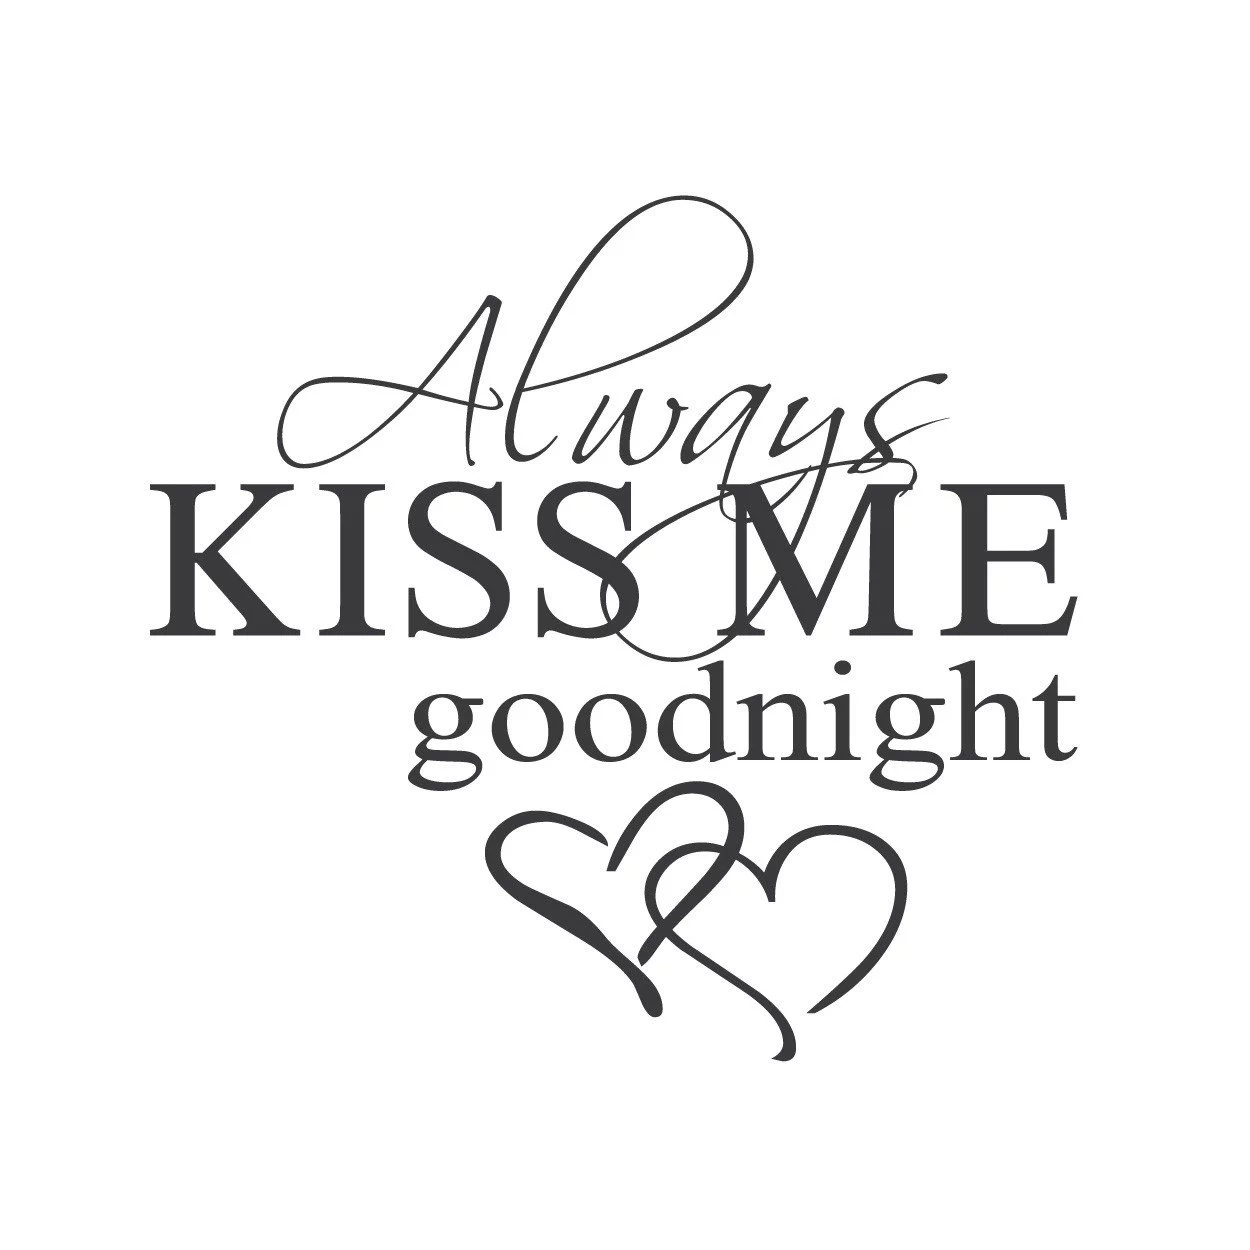 Quotes About Boyfriend Goodnight Quotes For Boyfriend Or Husband ▷ Tuko.co.ke